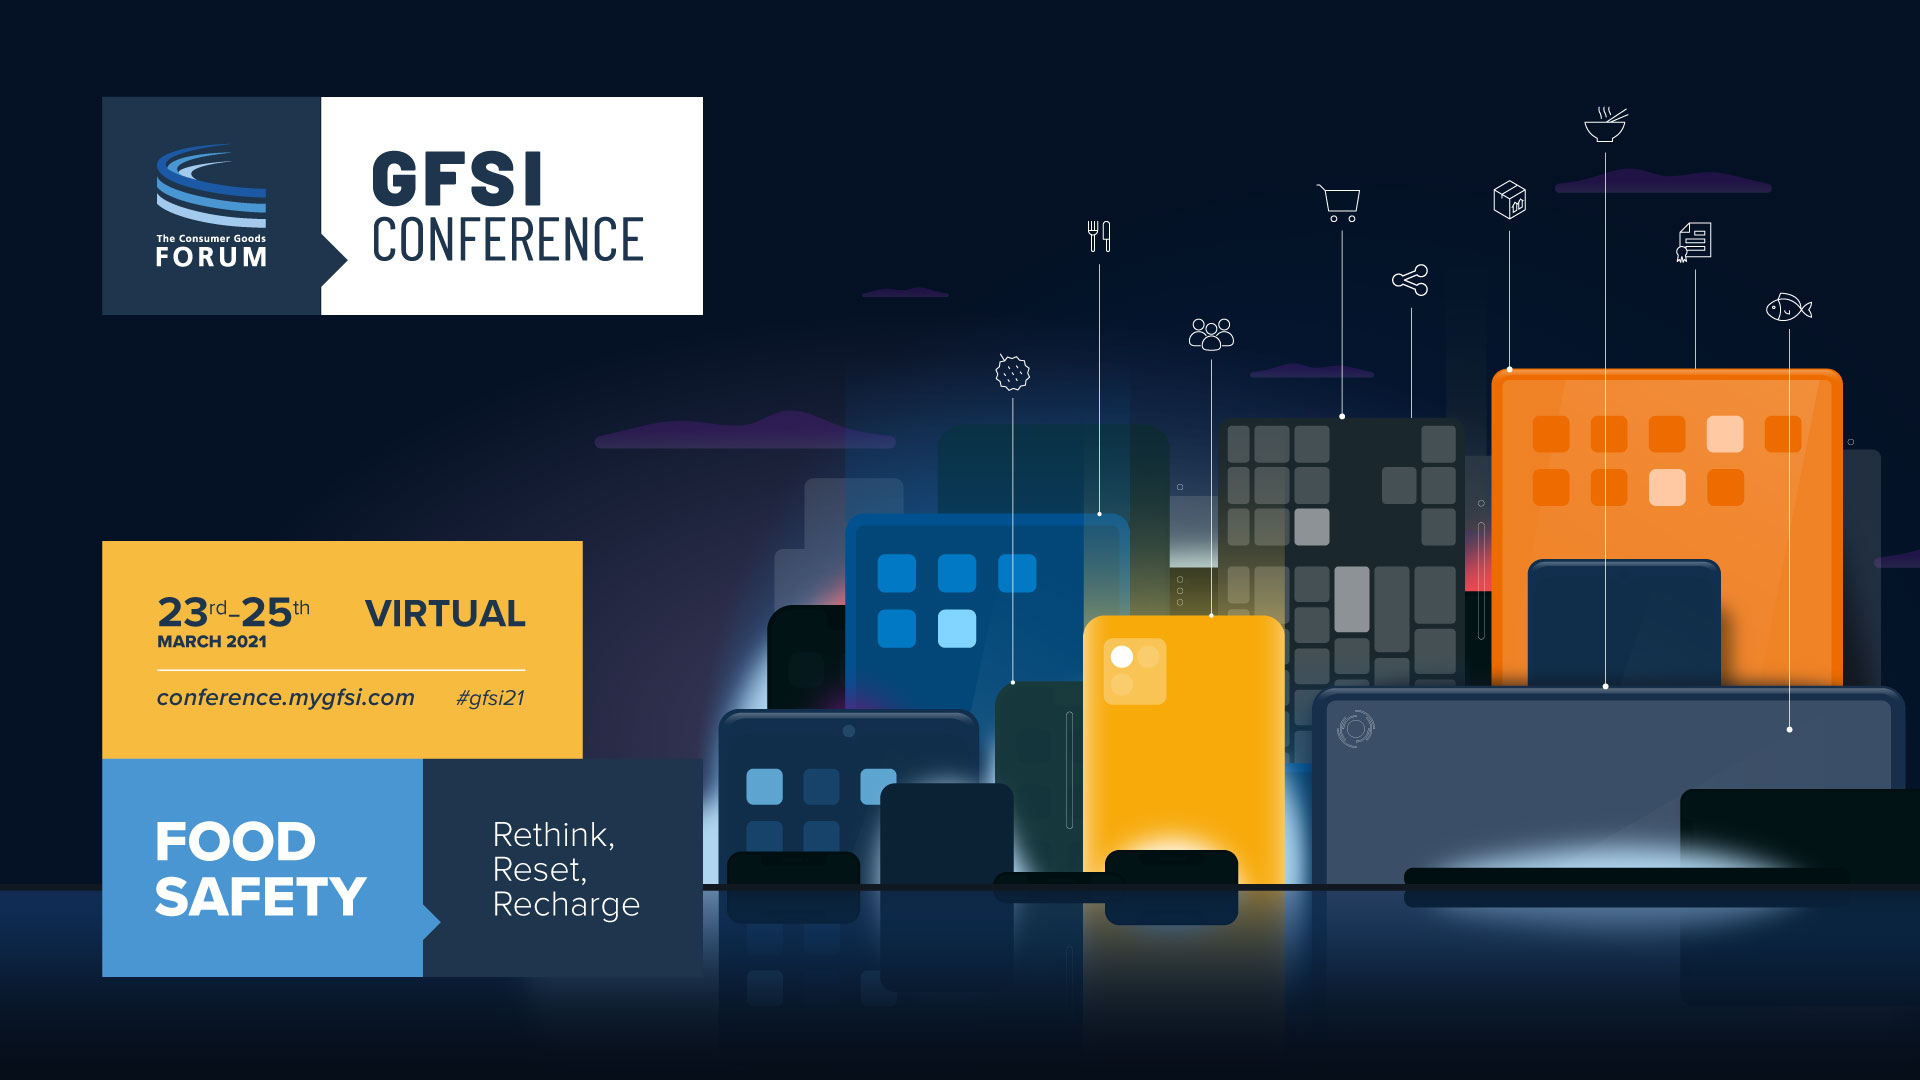 5 Key Takeaways from the 2021 GFSI Conference